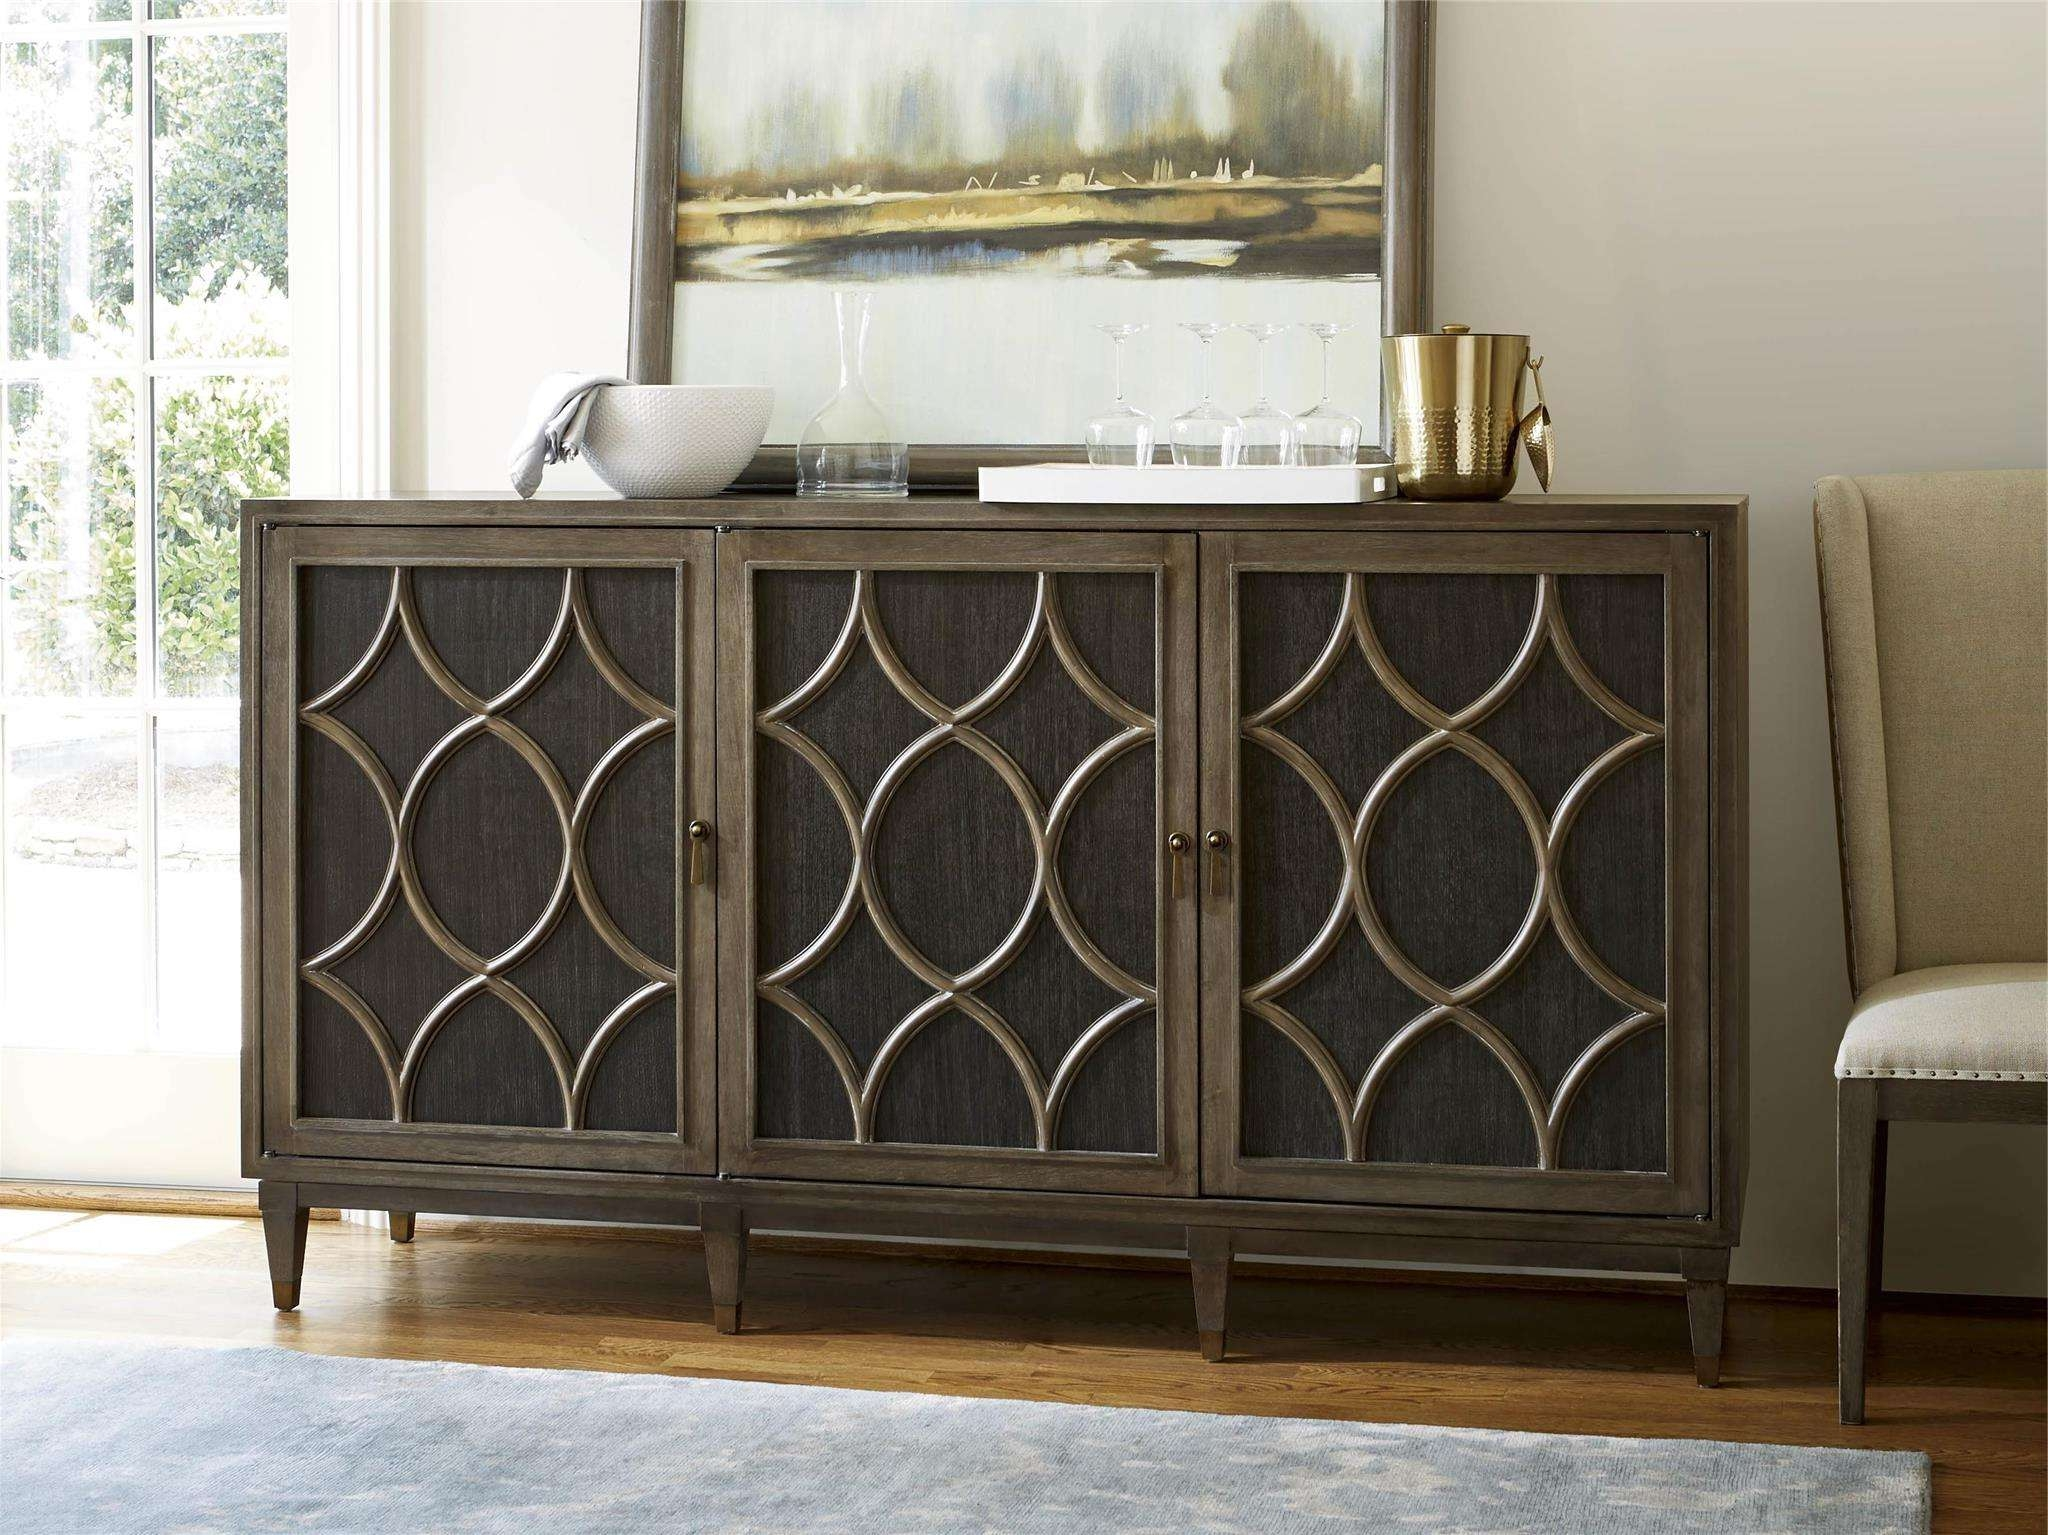 Universal Furniture | Playlist | Sideboard Intended For Furniture Sideboards (View 13 of 20)